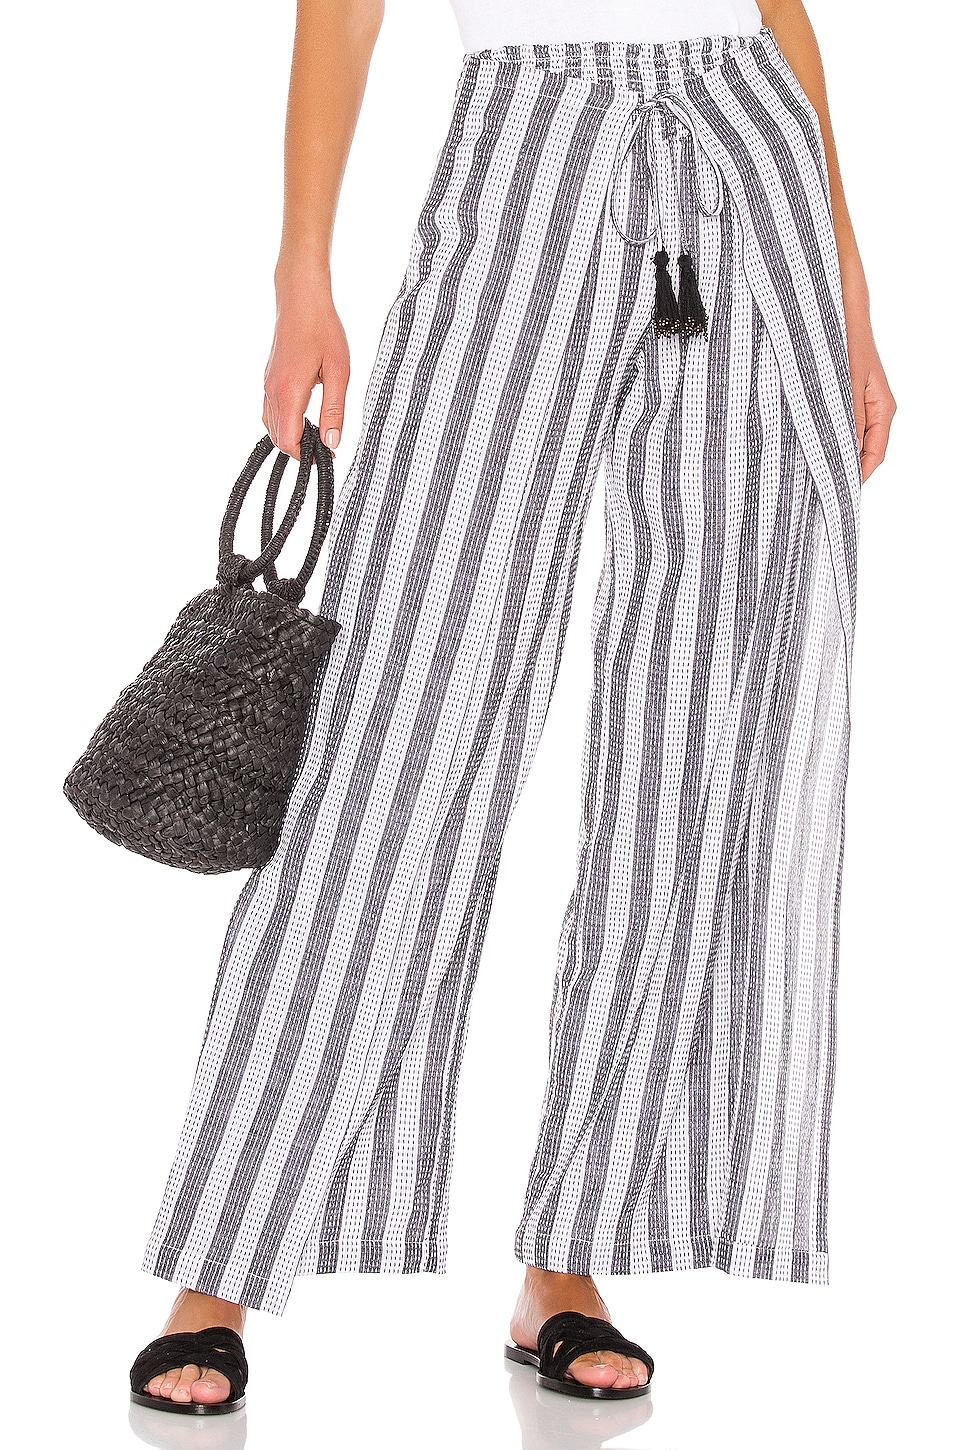 House of Harlow 1960 X REVOLVE Idrissa Pant in White & Black Stripe